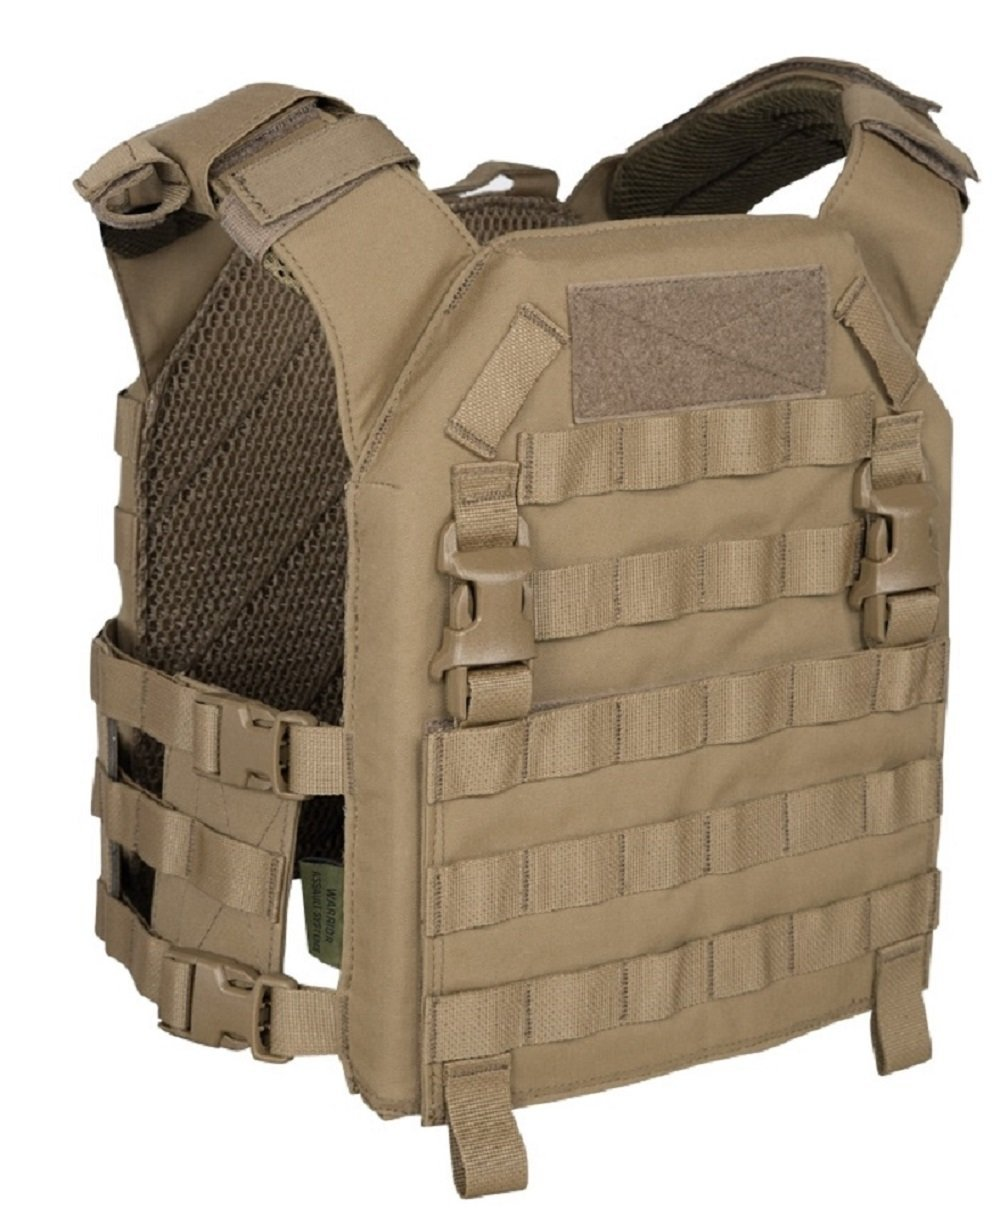 Warrior Assault Systems RECON Plate Carrier - CHK-SHIELD | Outdoor Army - Tactical Gear Shop